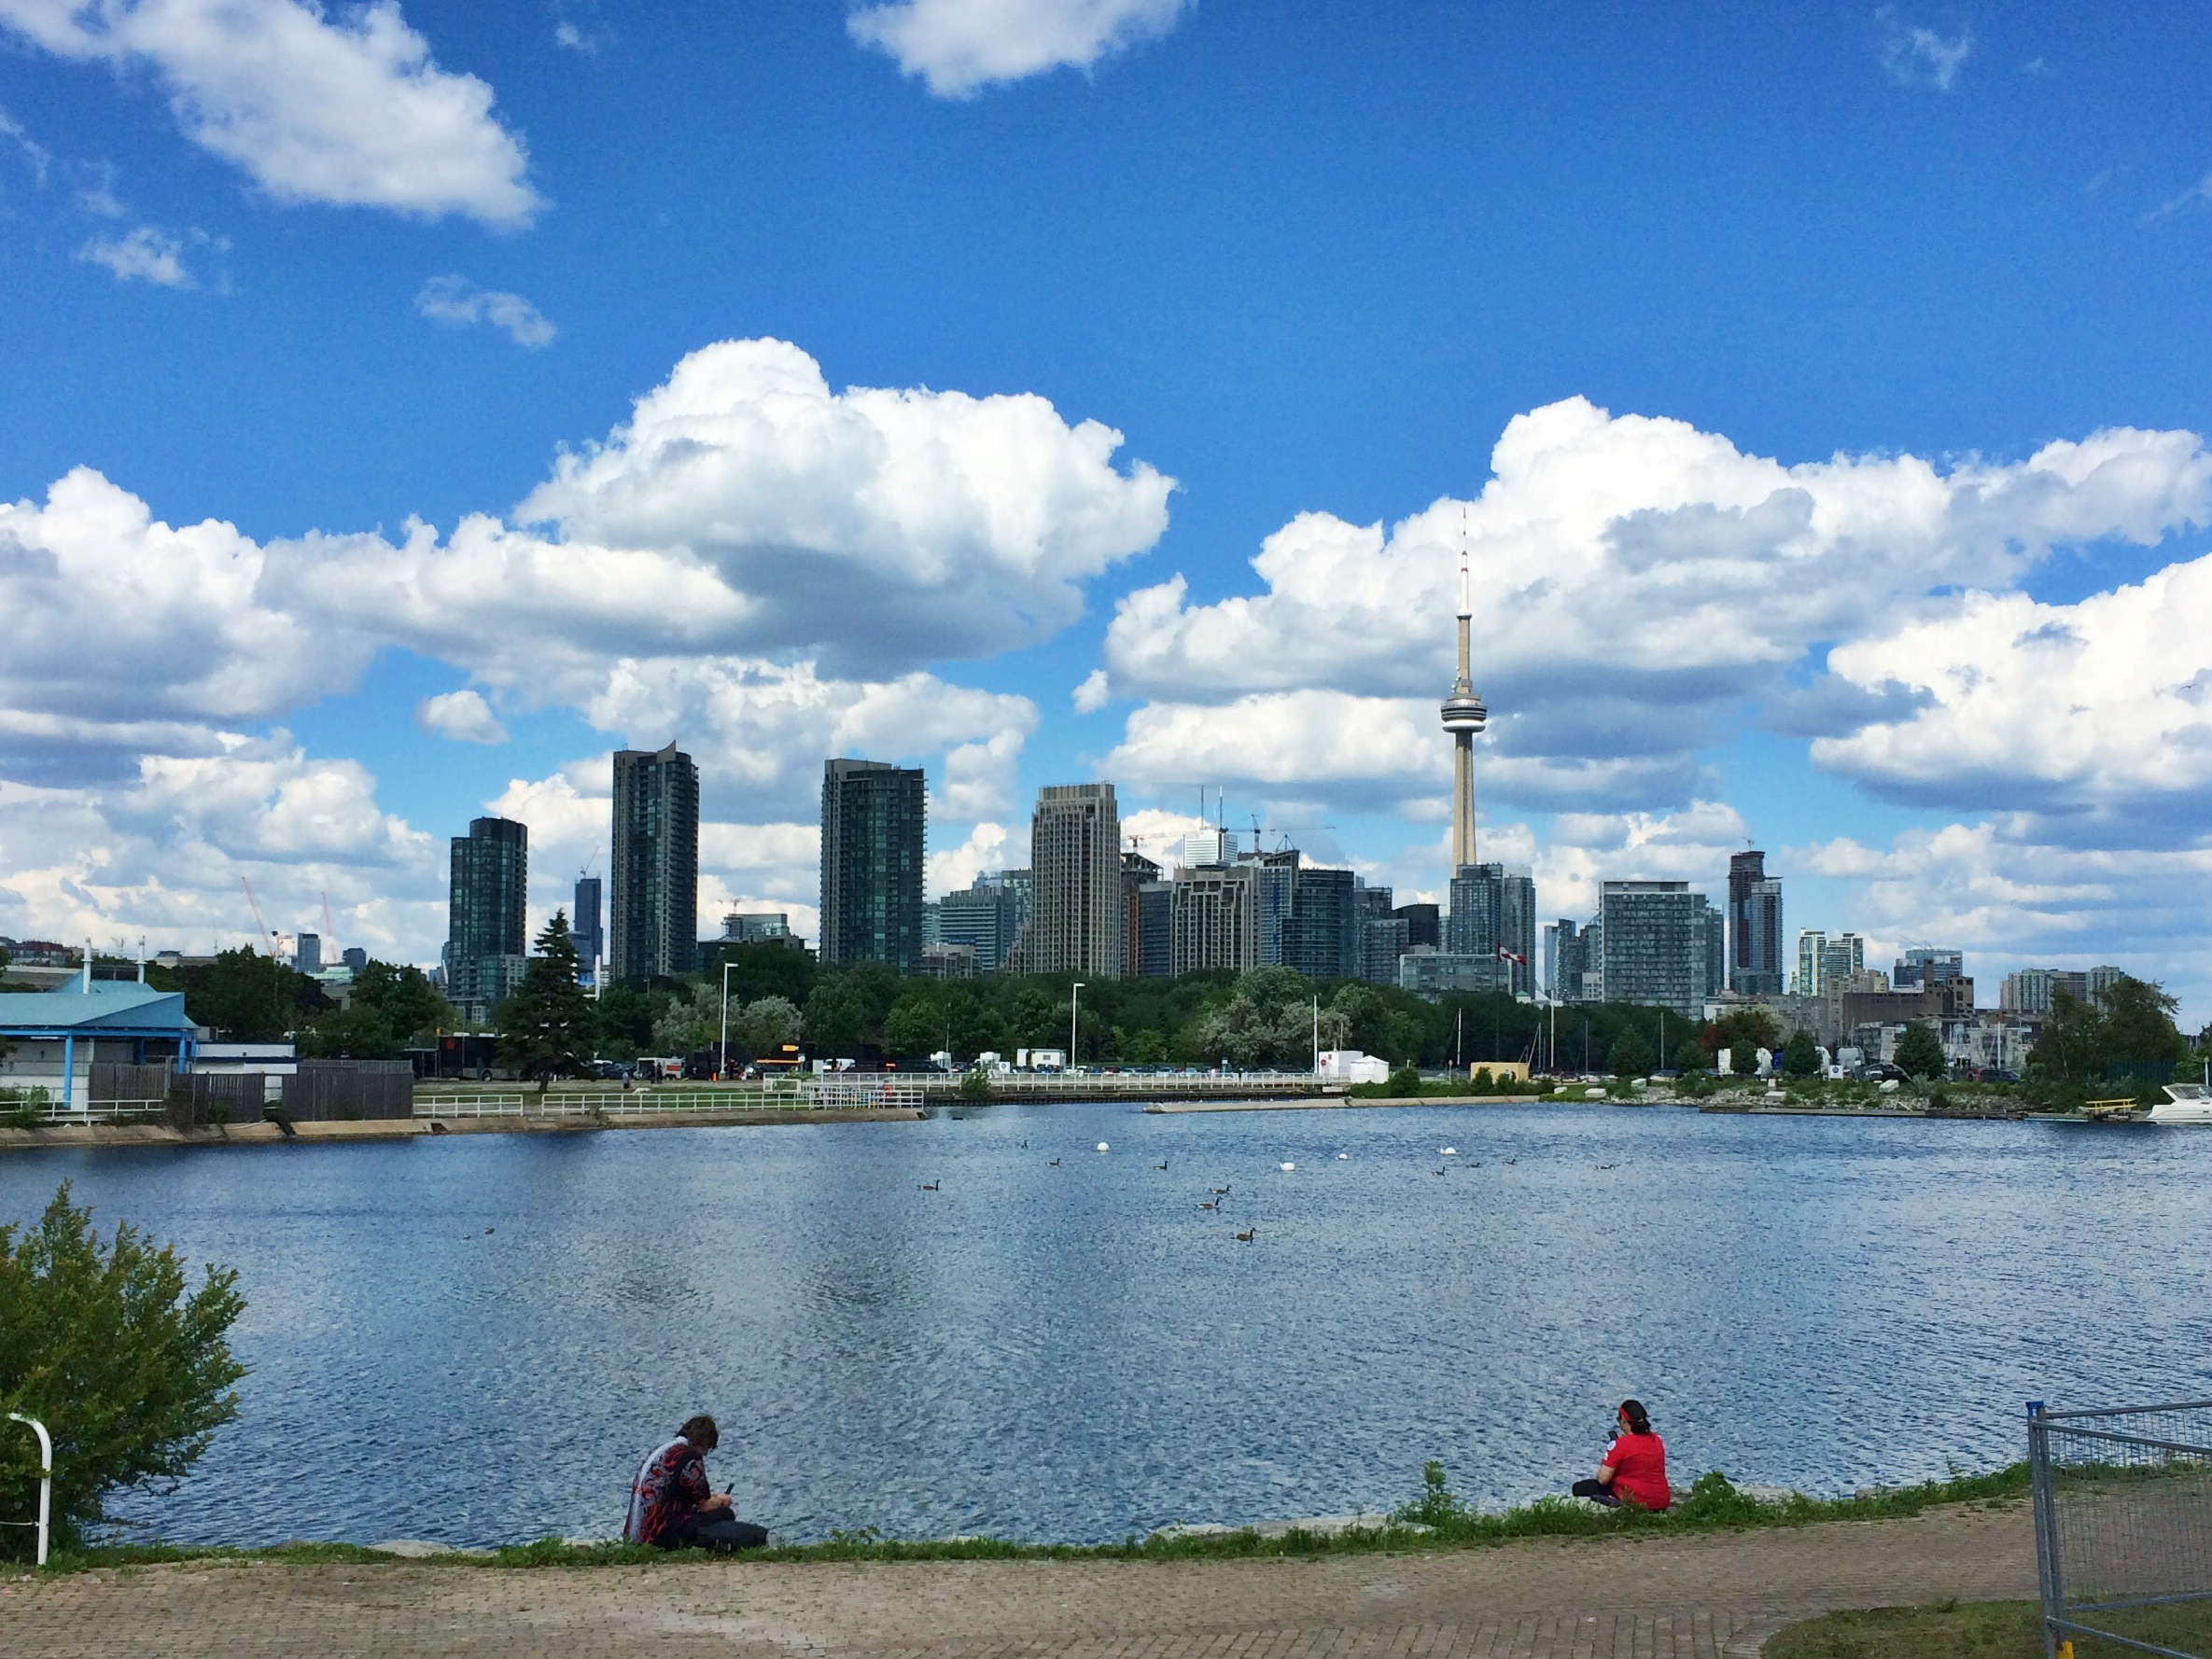 the beautiful view of Toronto, Ontario from our venue, The Molson Canadian Ampitheatre.